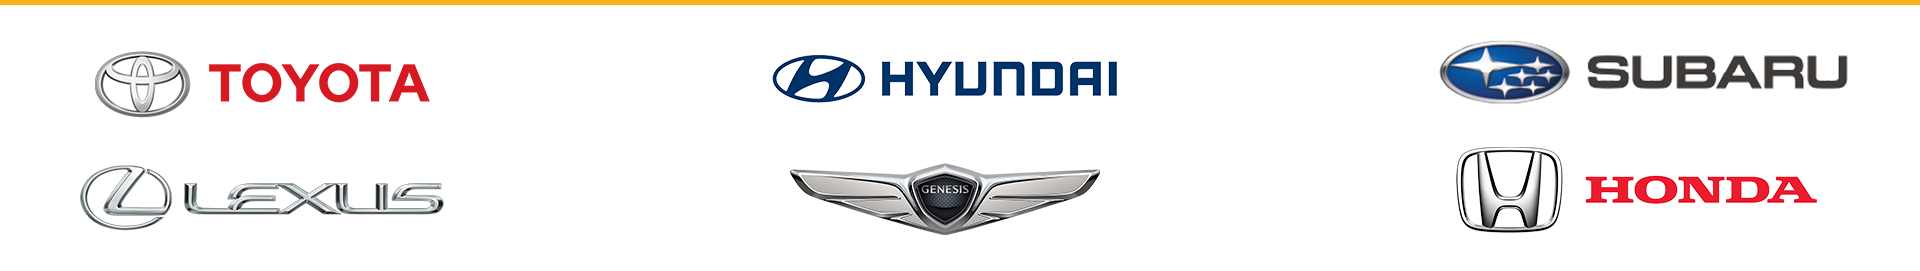 Brands we service: Toyota, Hyundai, Subaru, Lexus, Genesis, and Honda.